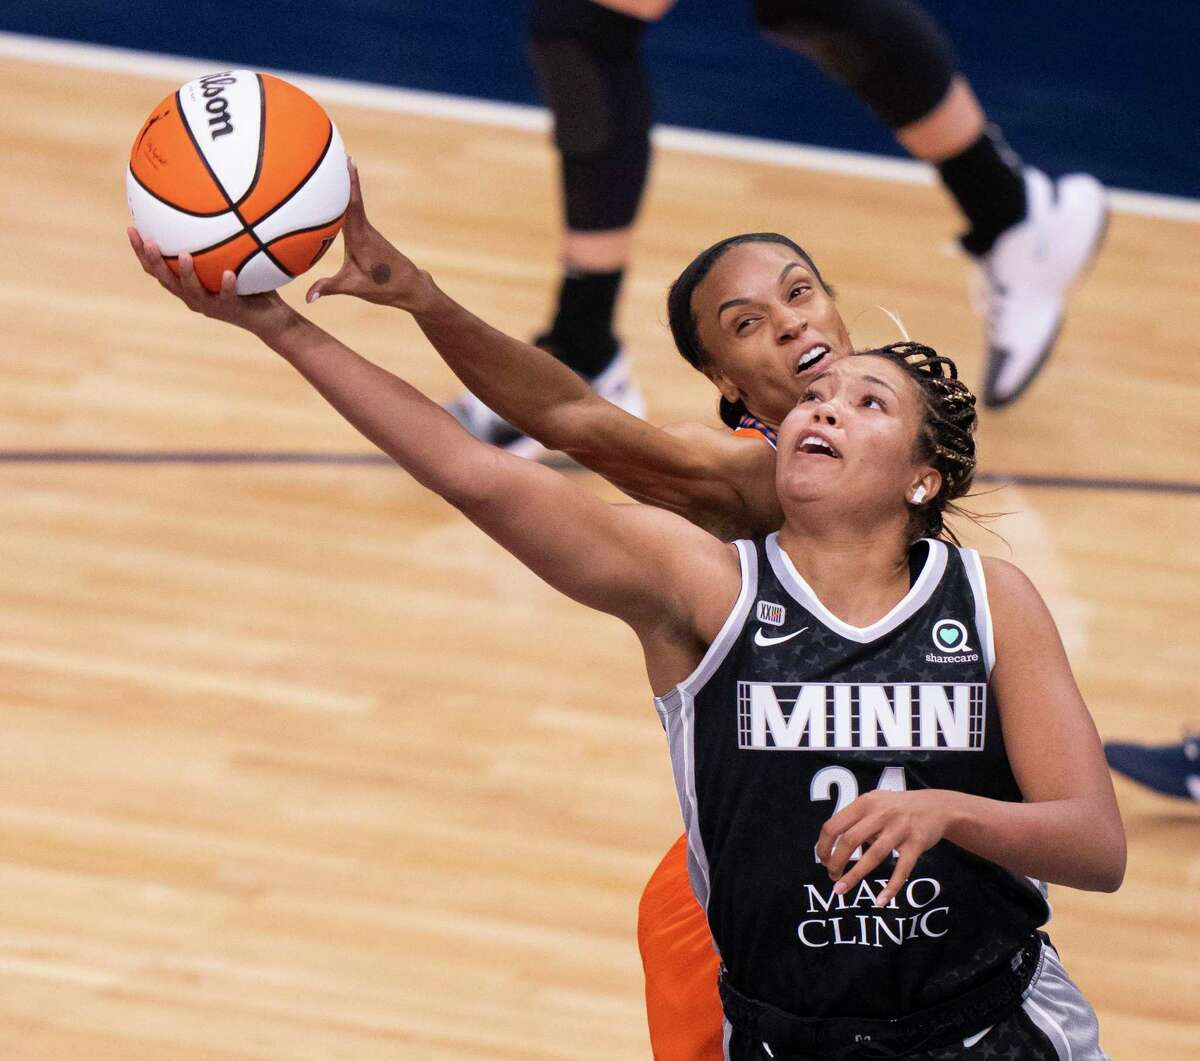 Minnesota Lynx forward Napheesa Collier (24) was fouled by Connecticut Sun forward/guard DeWanna Bonner in the second quarter during a game in May.